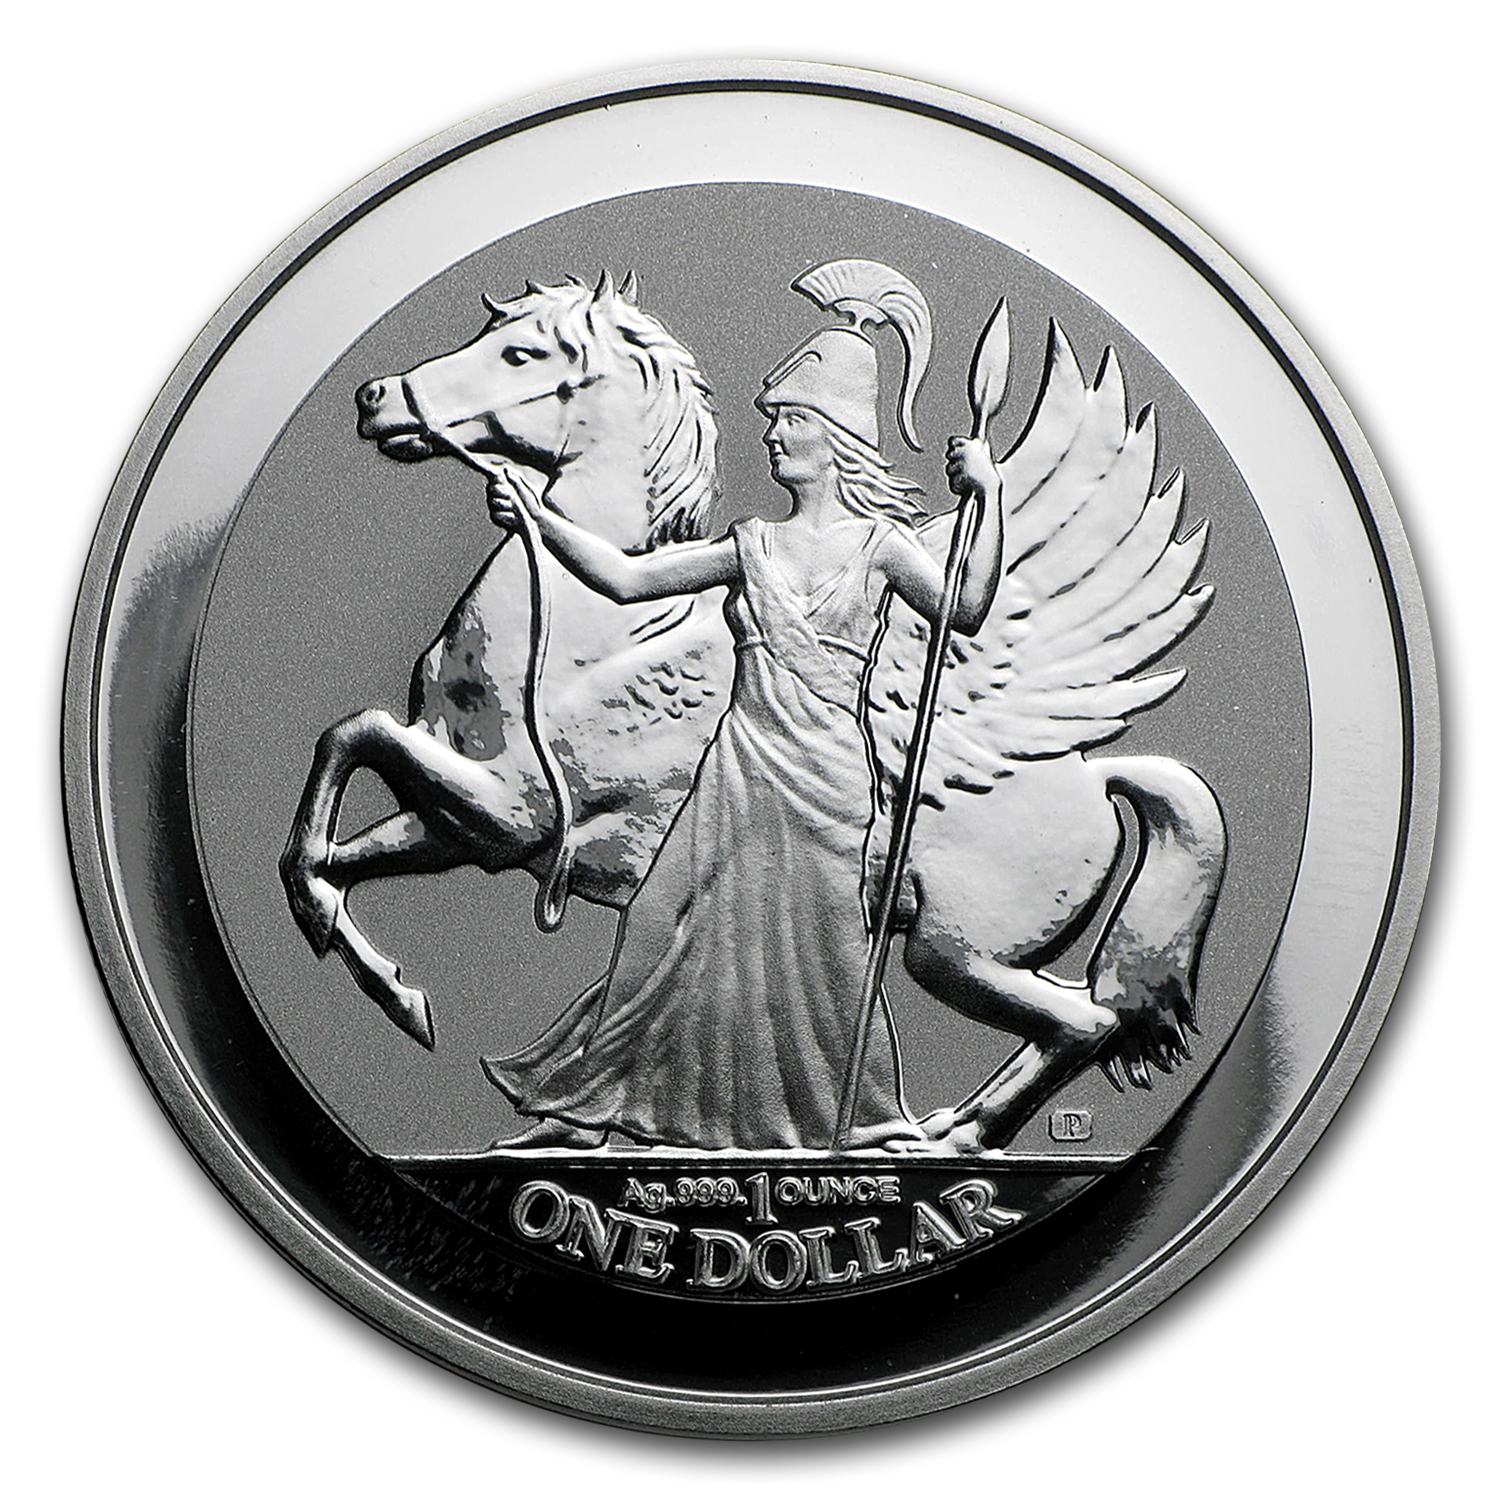 2017 British Virgin Islands 1 oz Silver Pegasus Reverse Proof